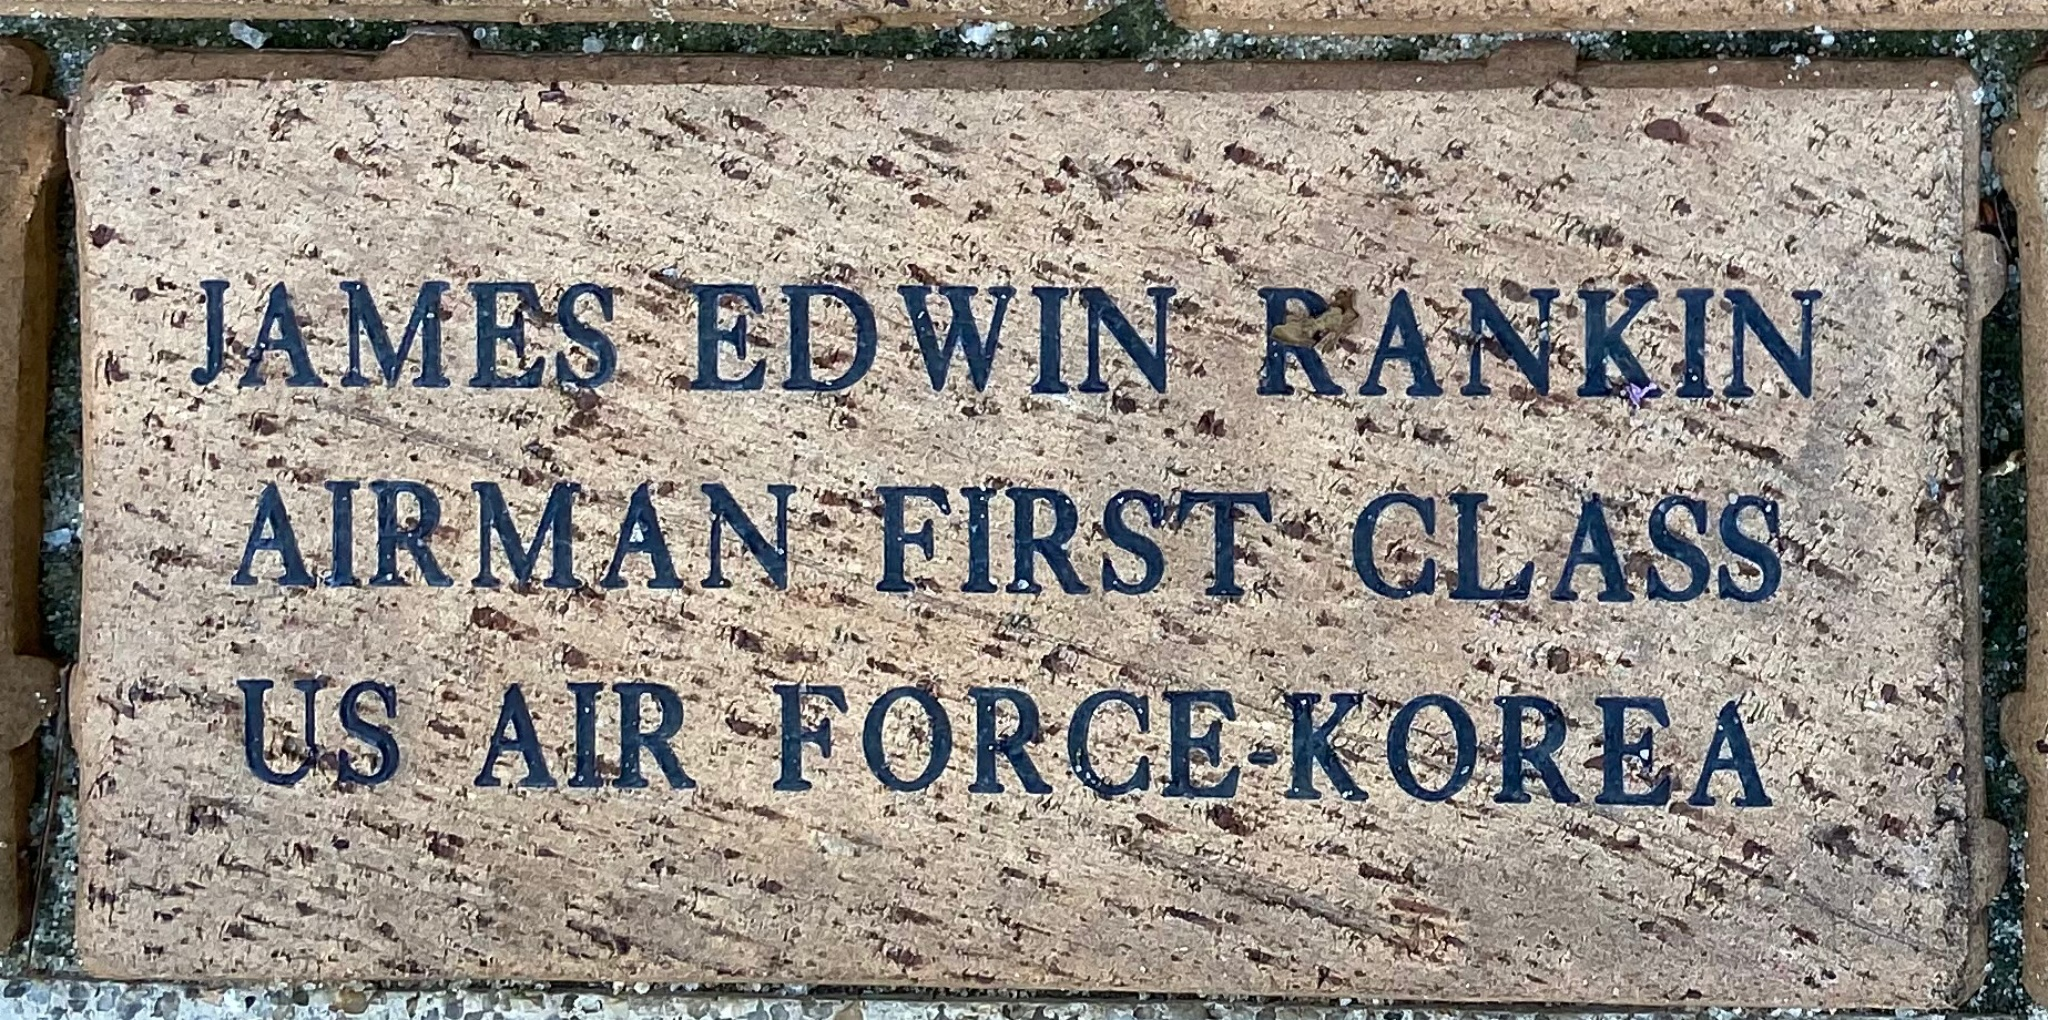 JAMES EDWIN RANKIN AIRMAN FIRST CLASS US AIR FORCE-KOREA